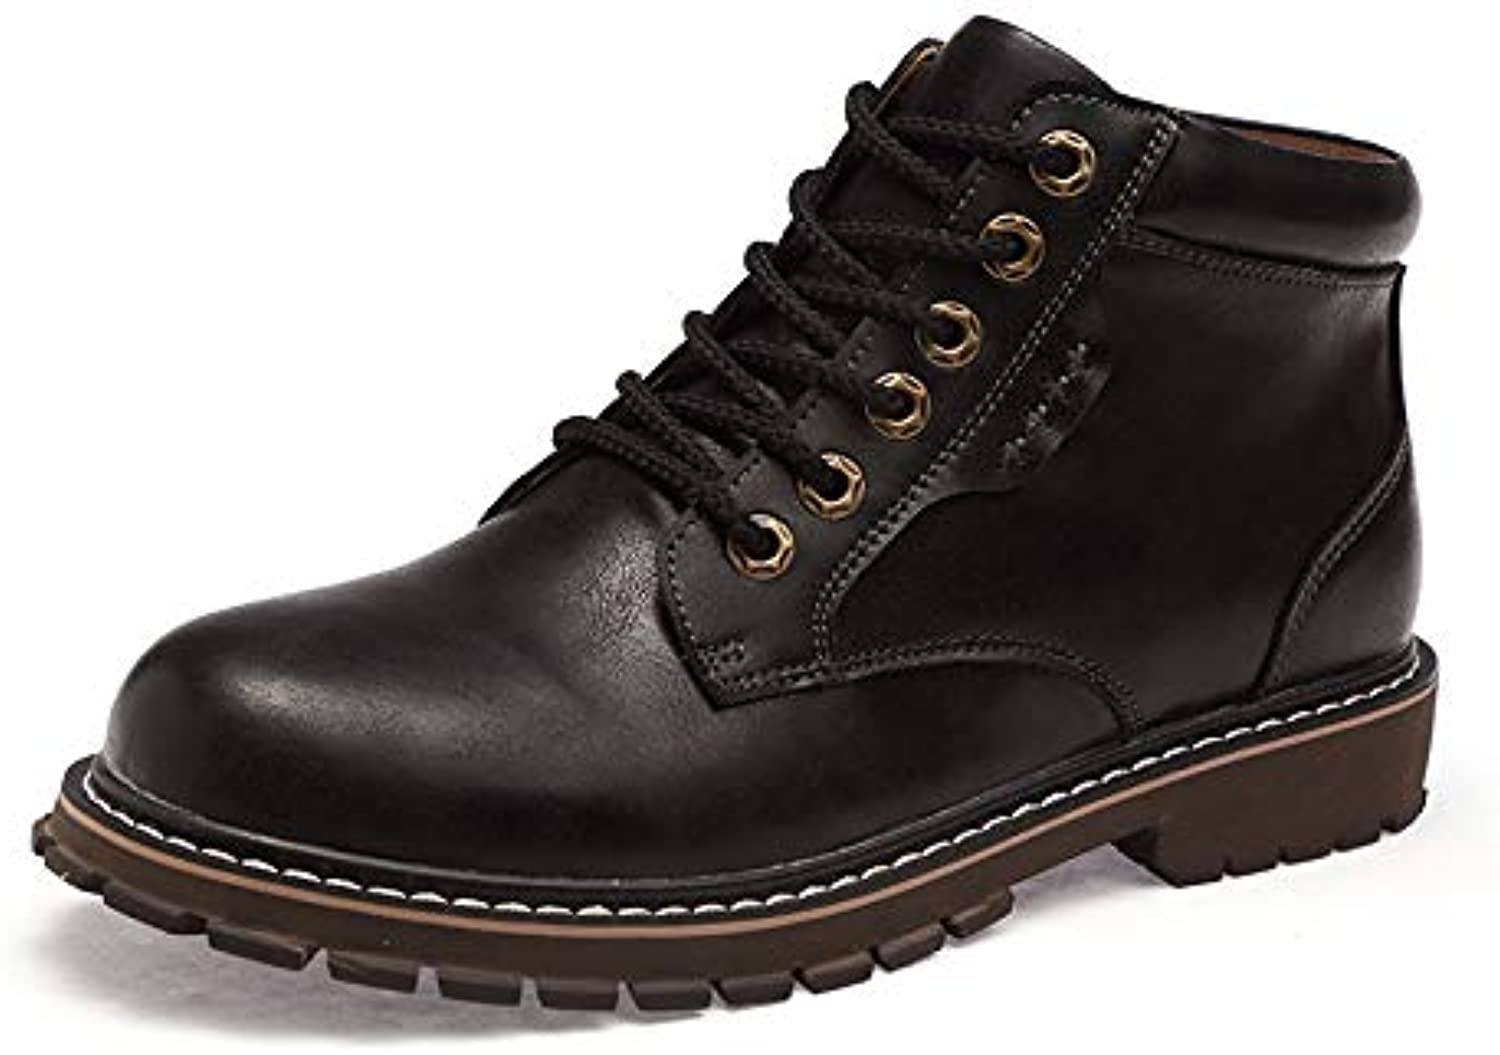 shoes House Tank Men's Soft Toe Oil Full Grain Leather Insulated Work Boots Construction Rubber Sole